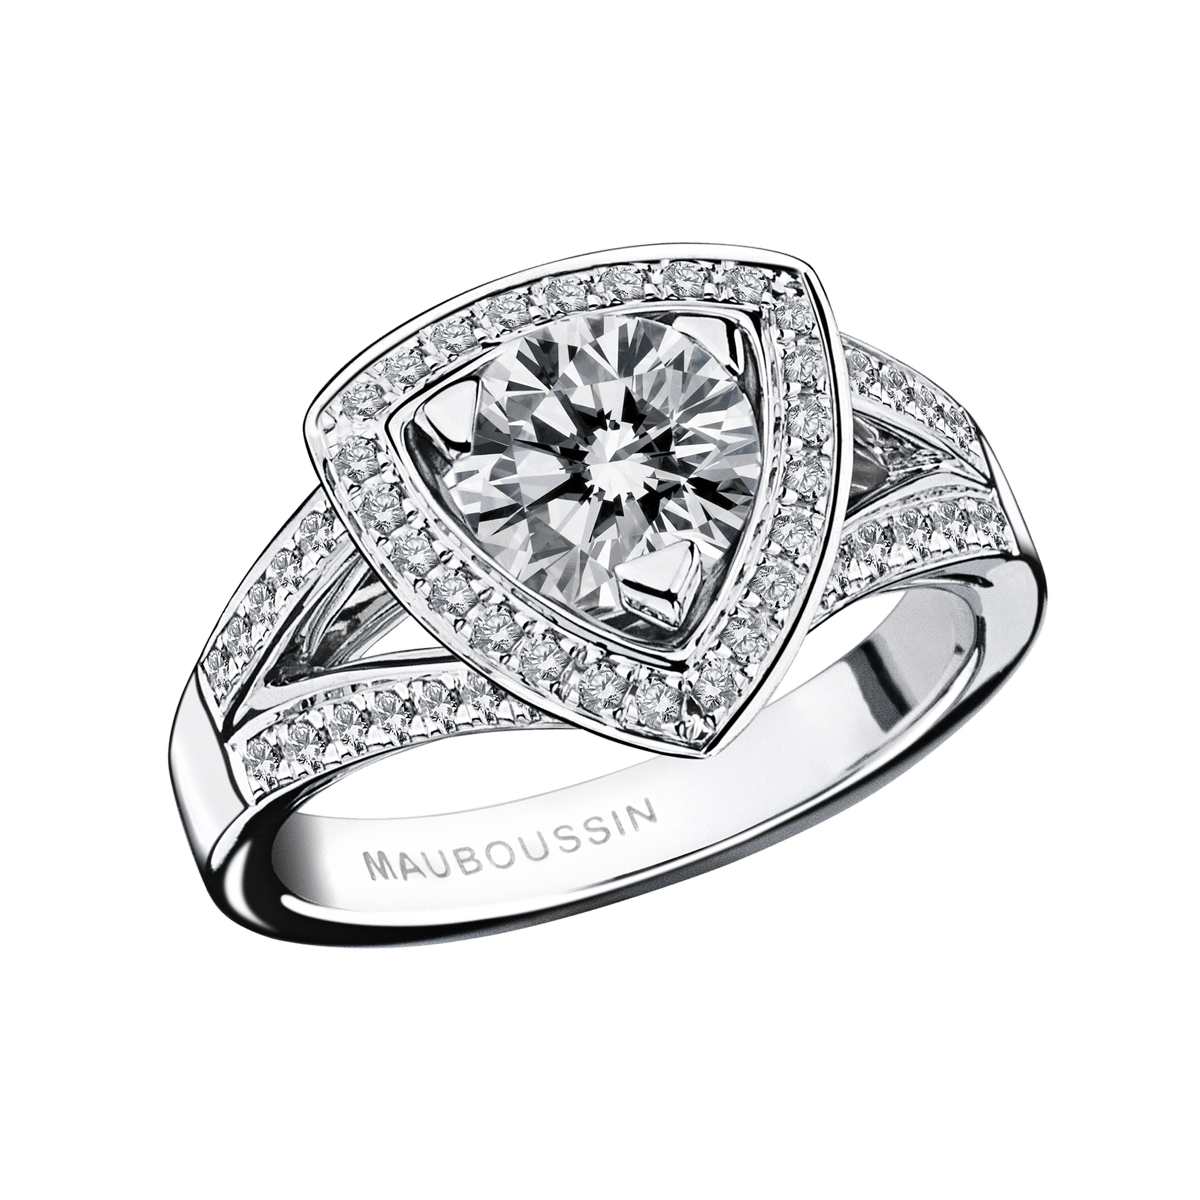 dream love ring white gold diamond 1 carat approx by mauboussin singapore. Black Bedroom Furniture Sets. Home Design Ideas